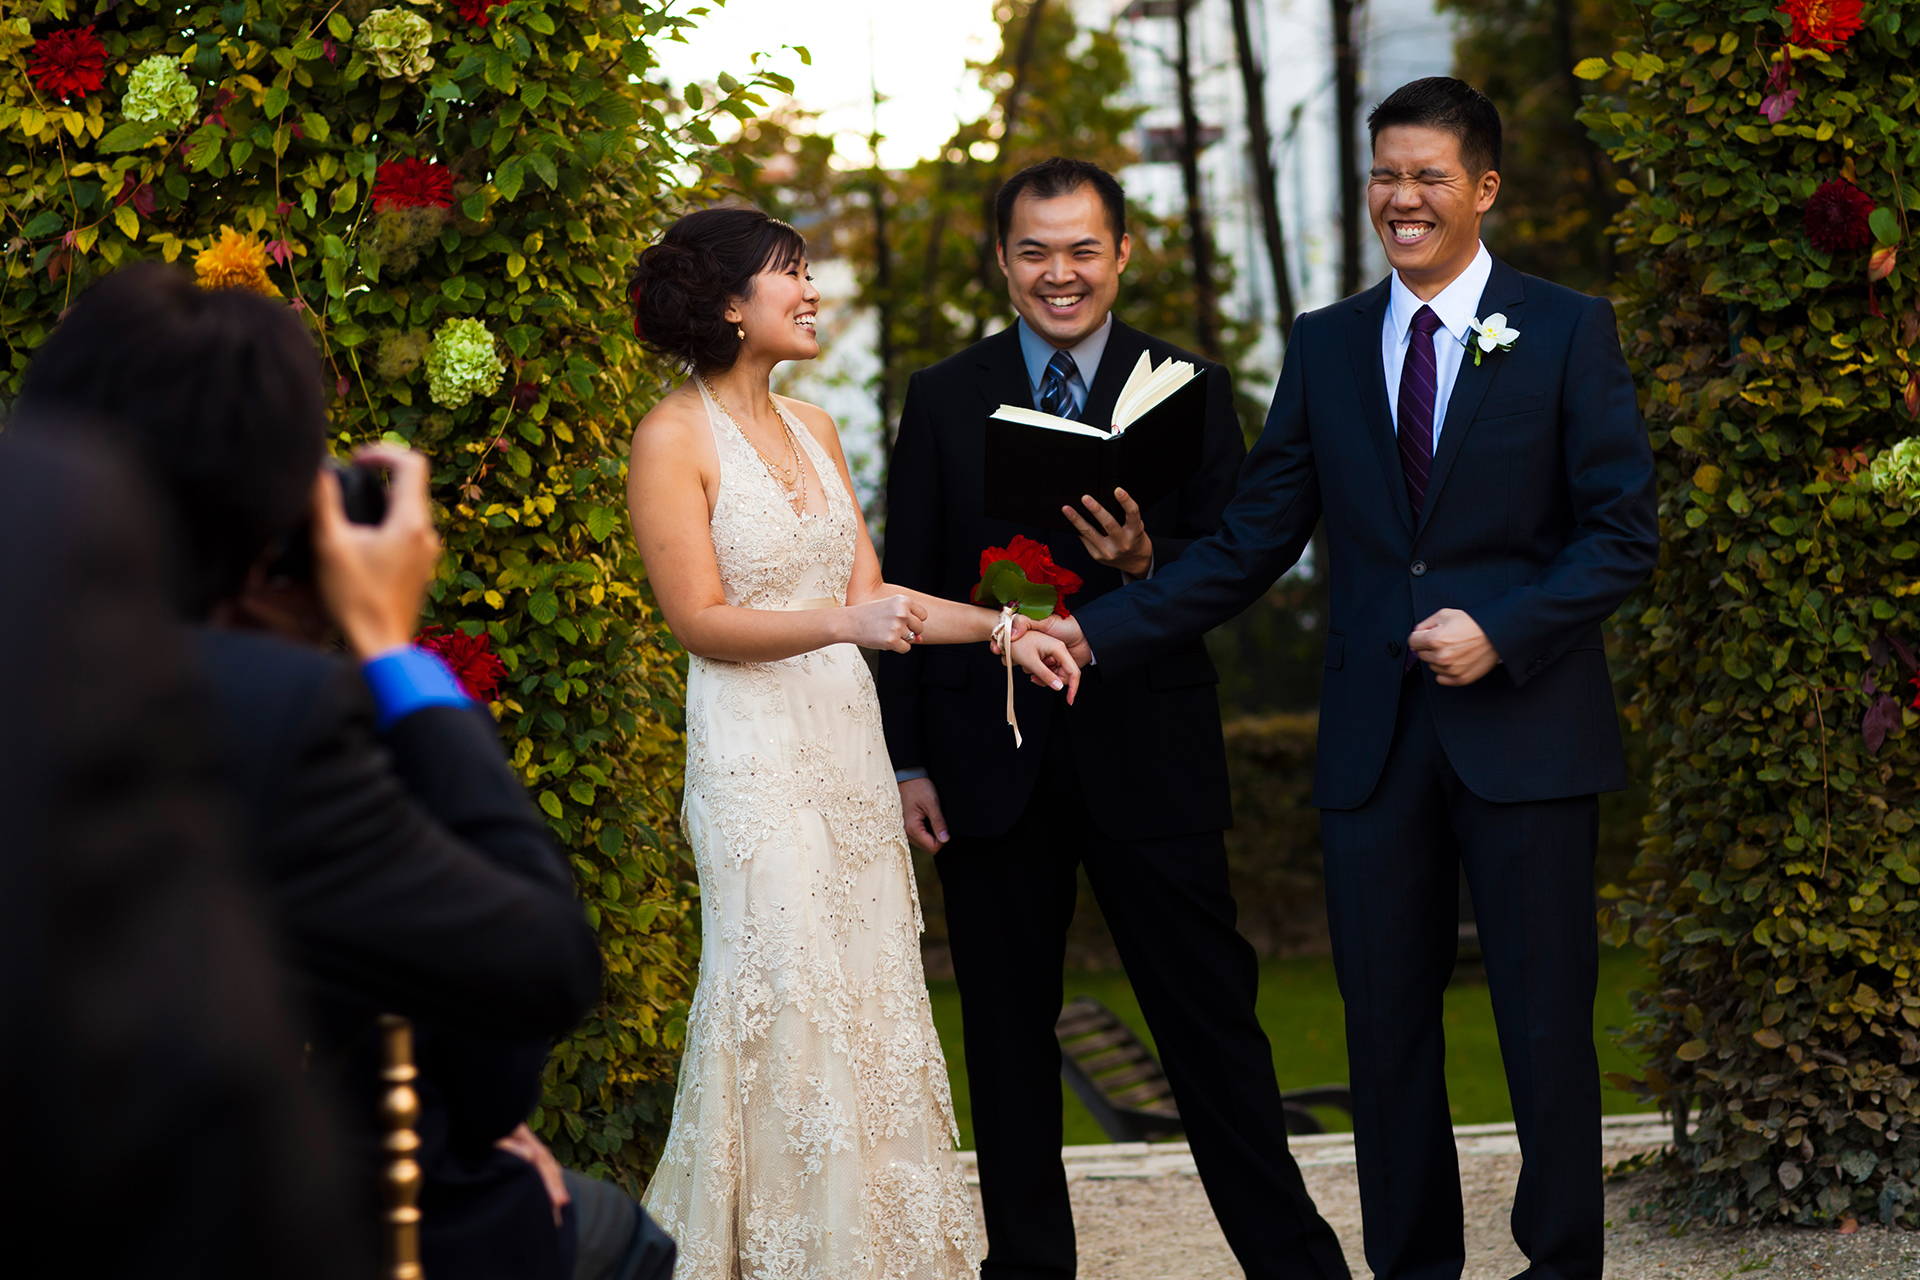 Paris Outdoor Elopement Altar Photo | Officially married now, the groom celebrates at the altar